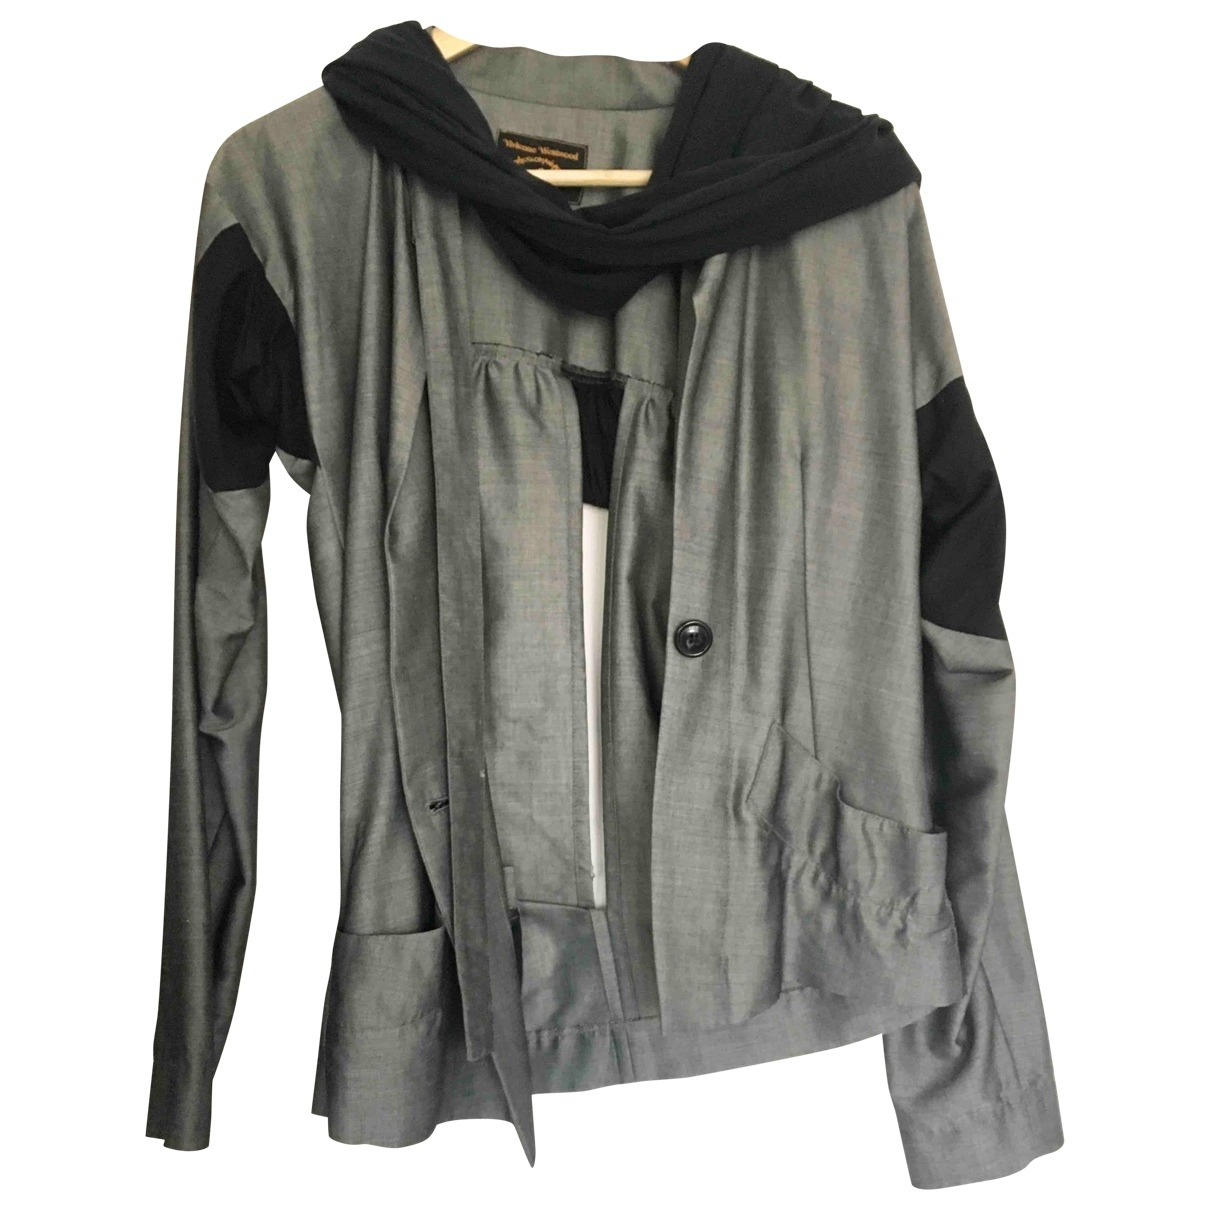 Vivienne Westwood Anglomania \N Grey jacket for Women 42 IT